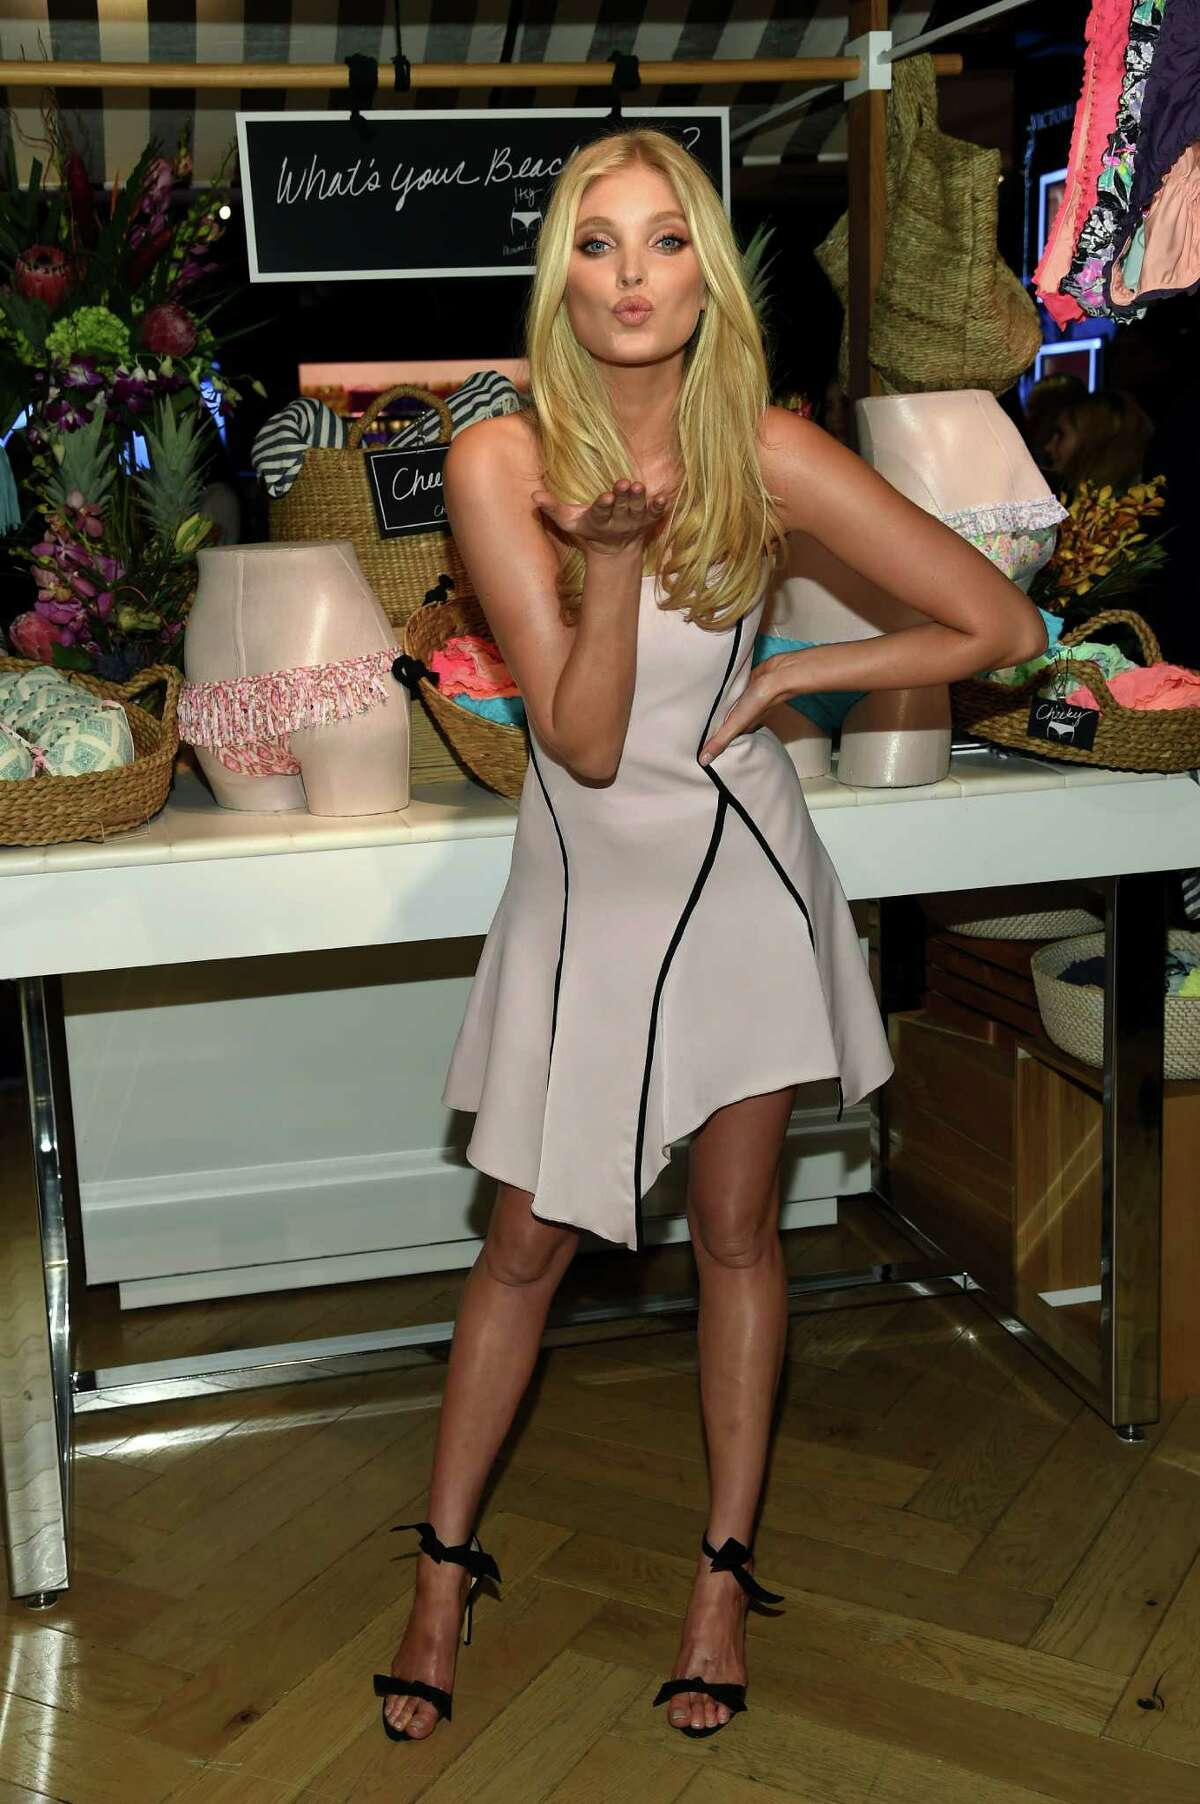 Victoria's Secret Angel Elsa Hosk celebrates the sexiest Push-ups and The Victoria's Secret Swim Special at Victoria's Secret Herald Square on February 25, 2015 in New York City.